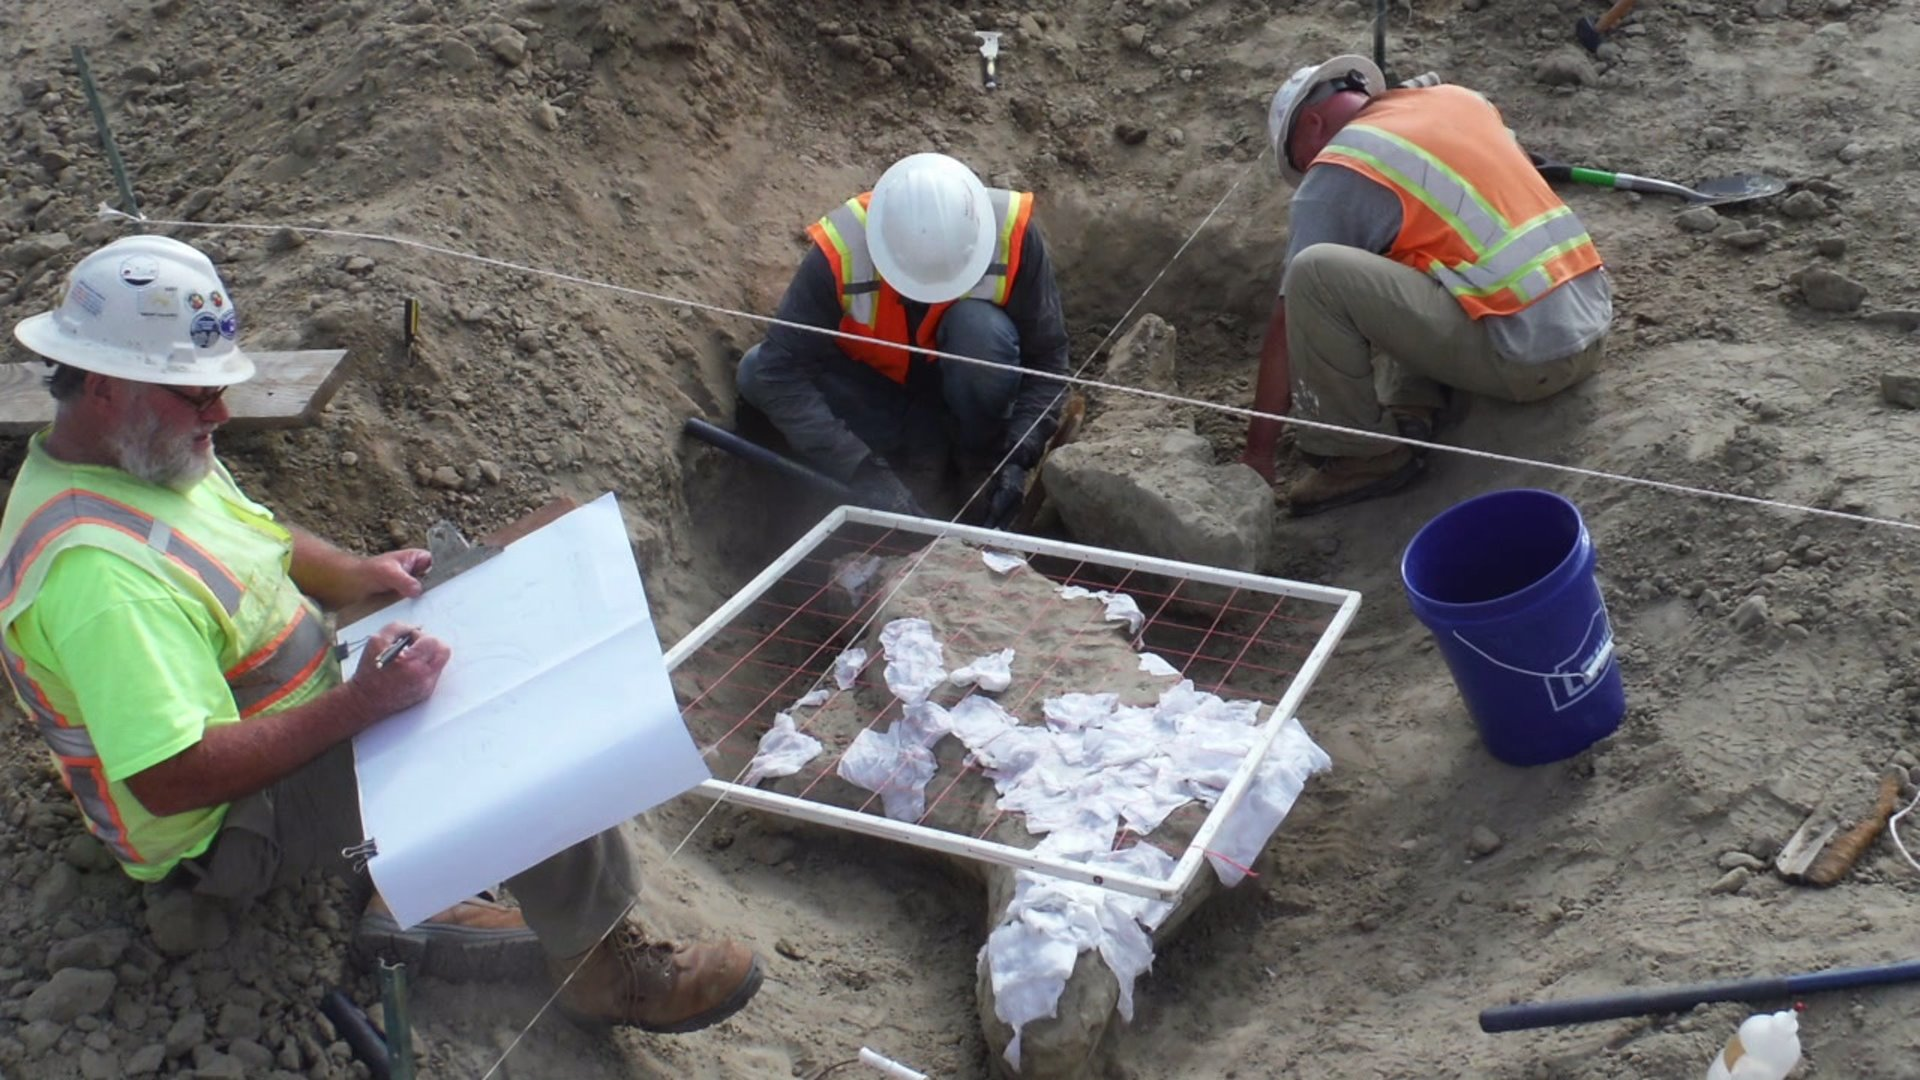 Ice Age fossils found at Carlsbad construction site   FOX ...